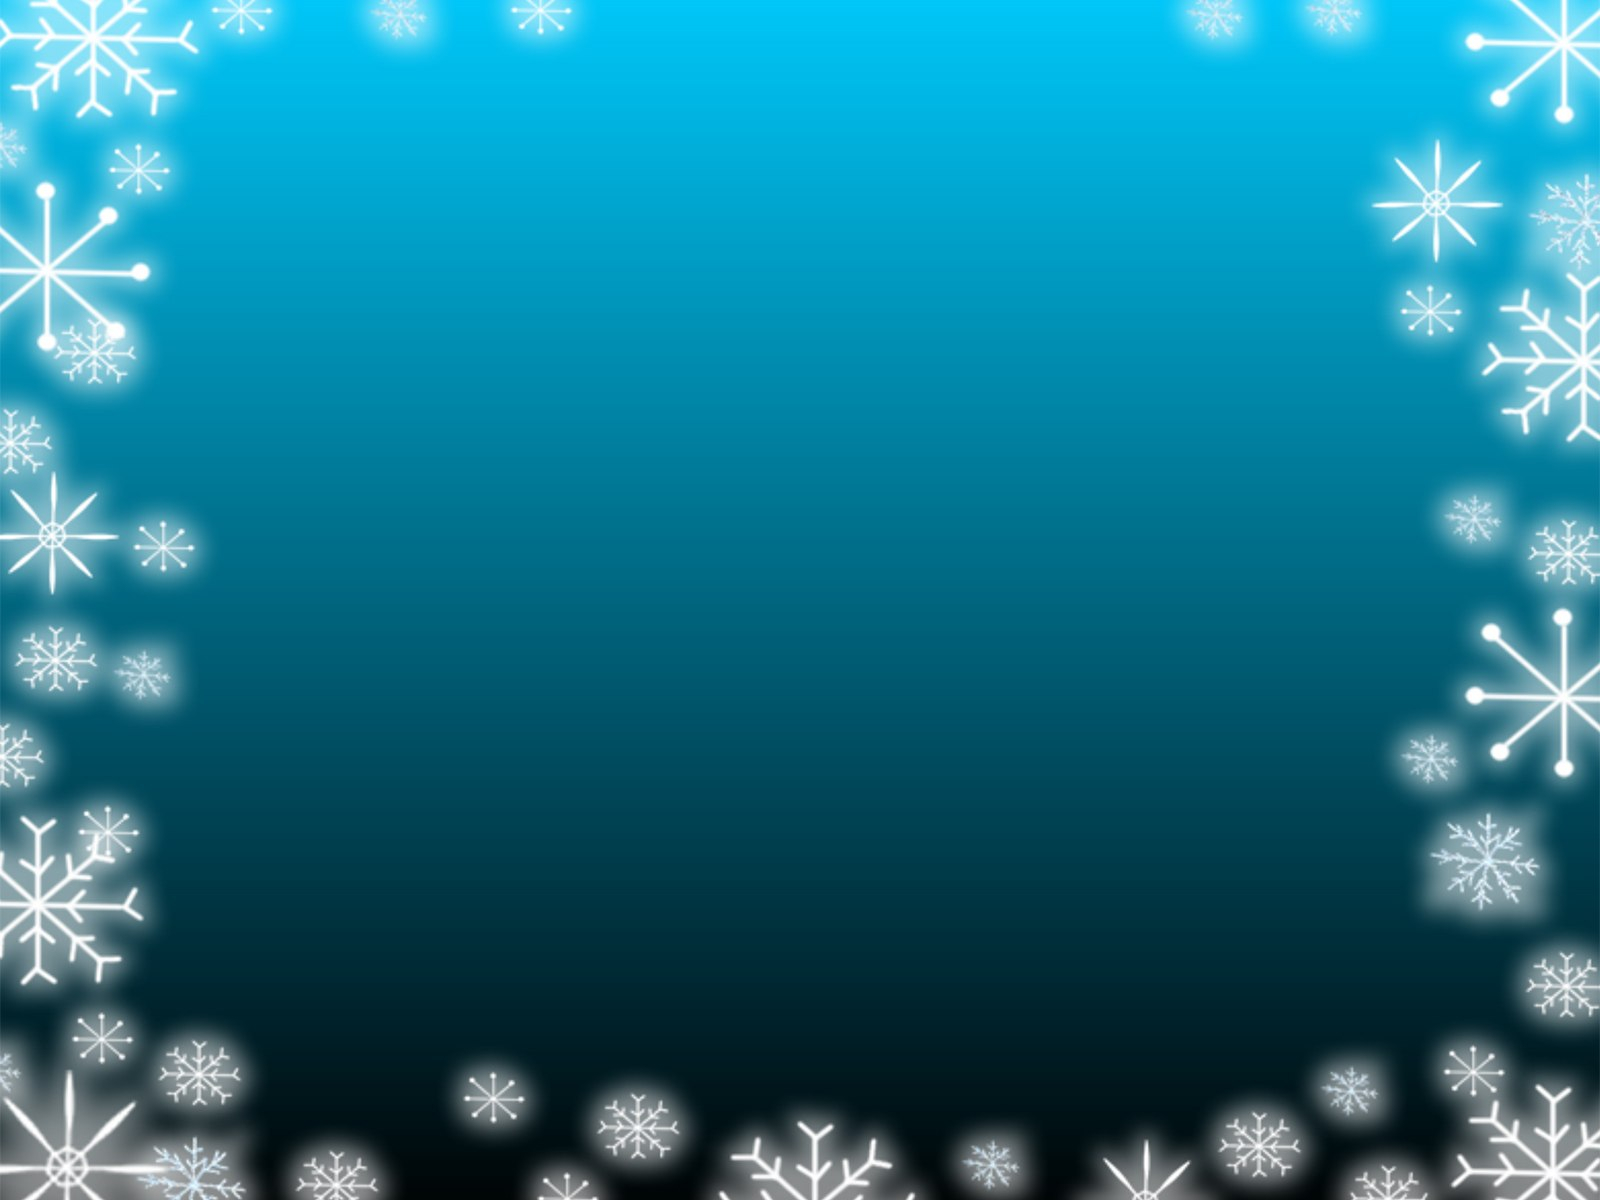 Snow Backgrounds  Ppt Grounds With Snow Powerpoint Template